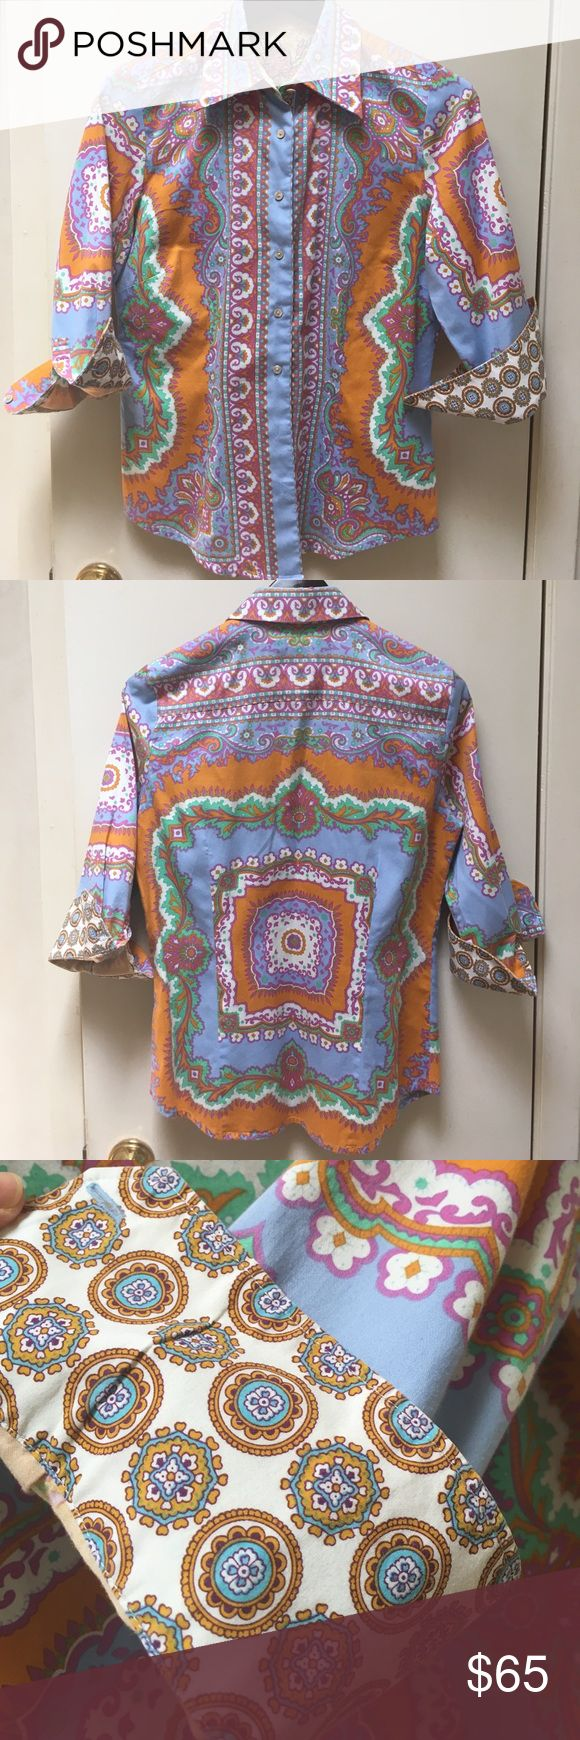 """🌸Robert Graham Colorful Button Down🌸 Size S/P Great Long Sleeve Robert Graham Button Down. 15"""" across shoulders and 26 1/2"""" long. Great Cuff that Robert Graham is popular for. Robert Graham Tops Button Down Shirts"""